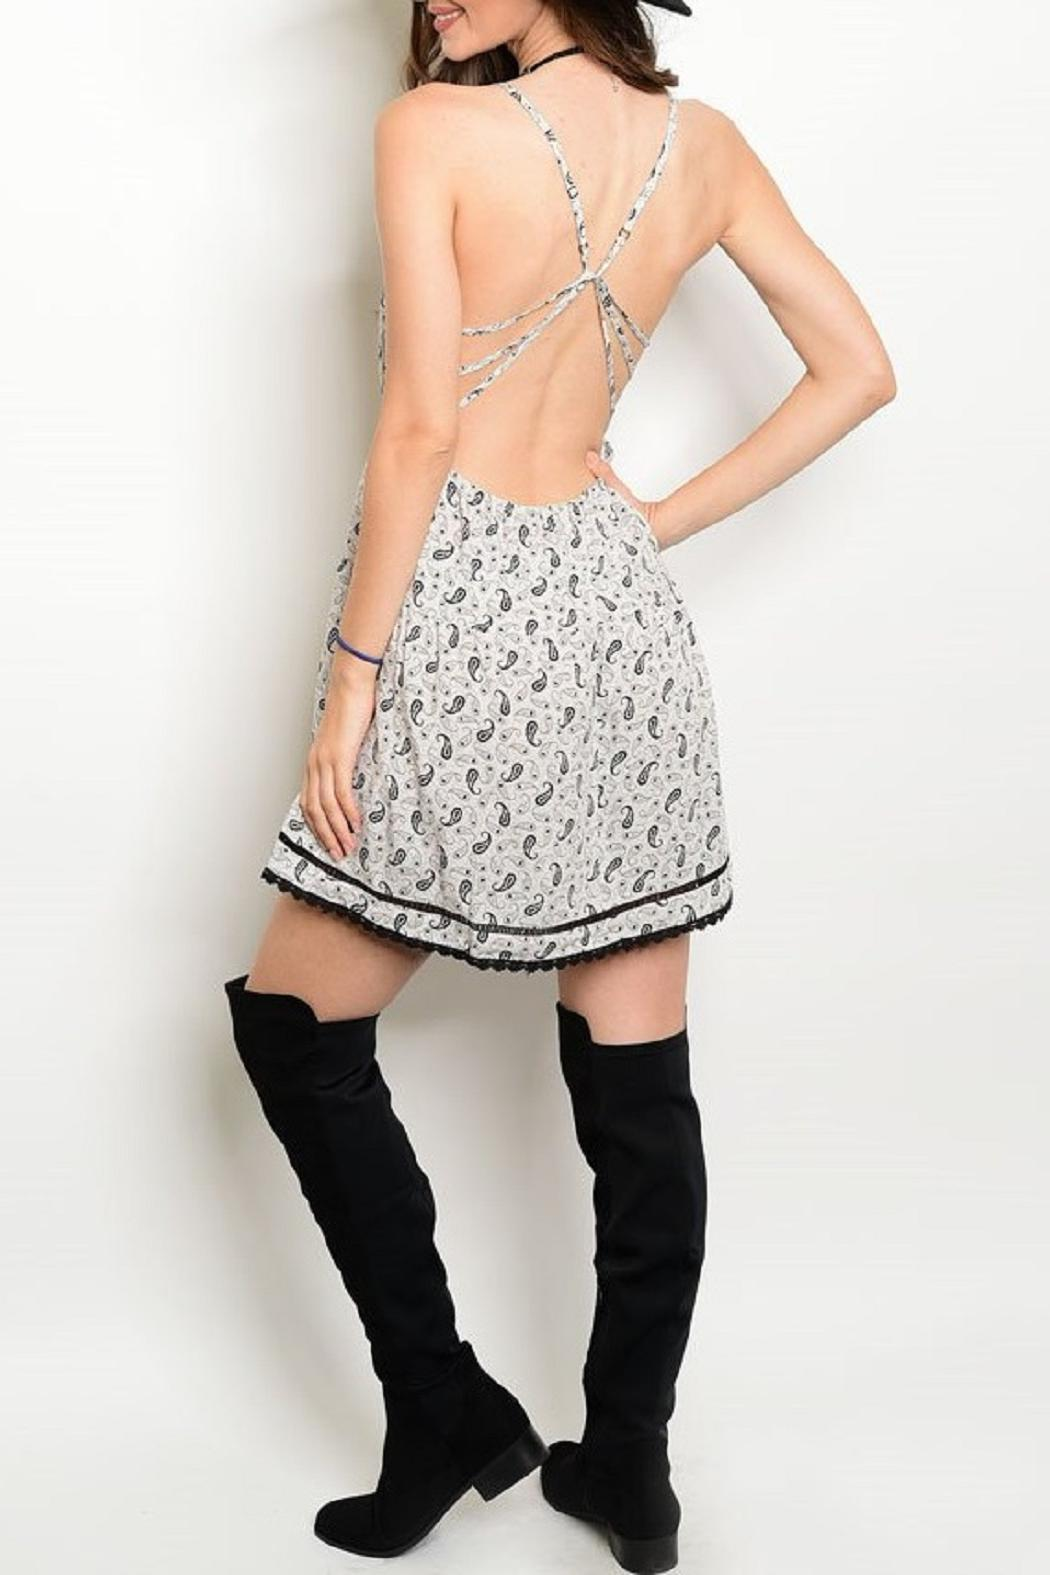 Adore Clothes & More Gray/black Paisley Dress - Front Full Image